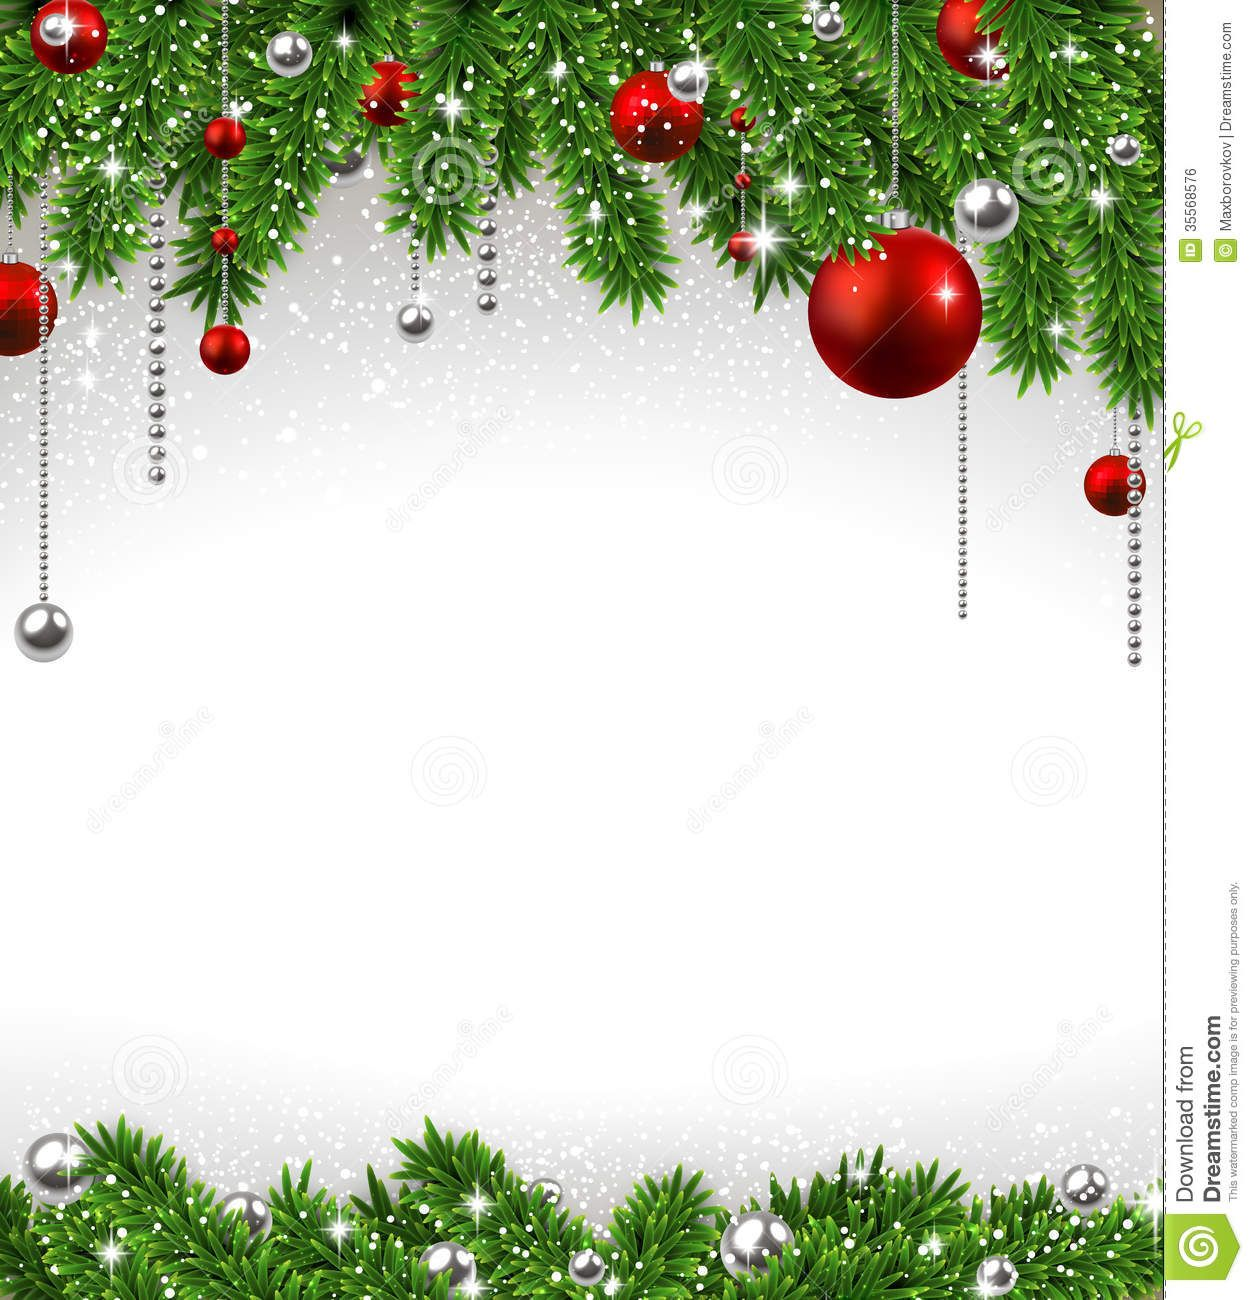 Christmas Background With Fir Branches And Balls. Royalty